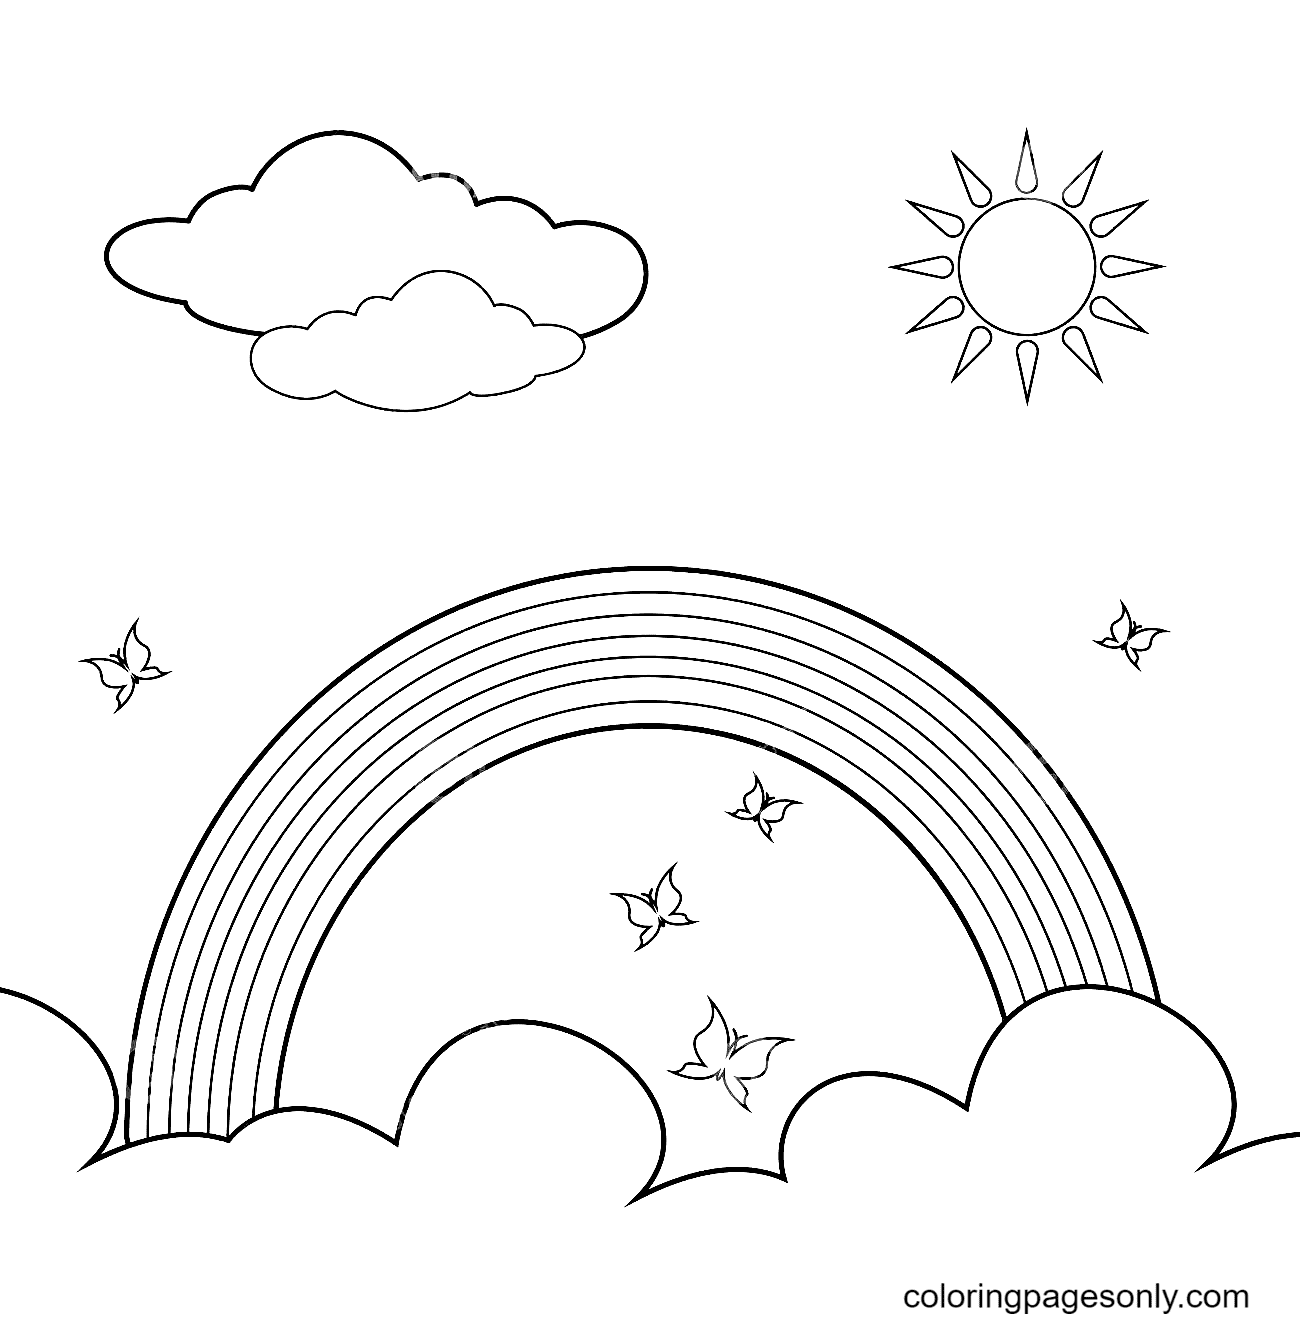 Rainbow, Sun, Clouds and Butterflies Coloring Page